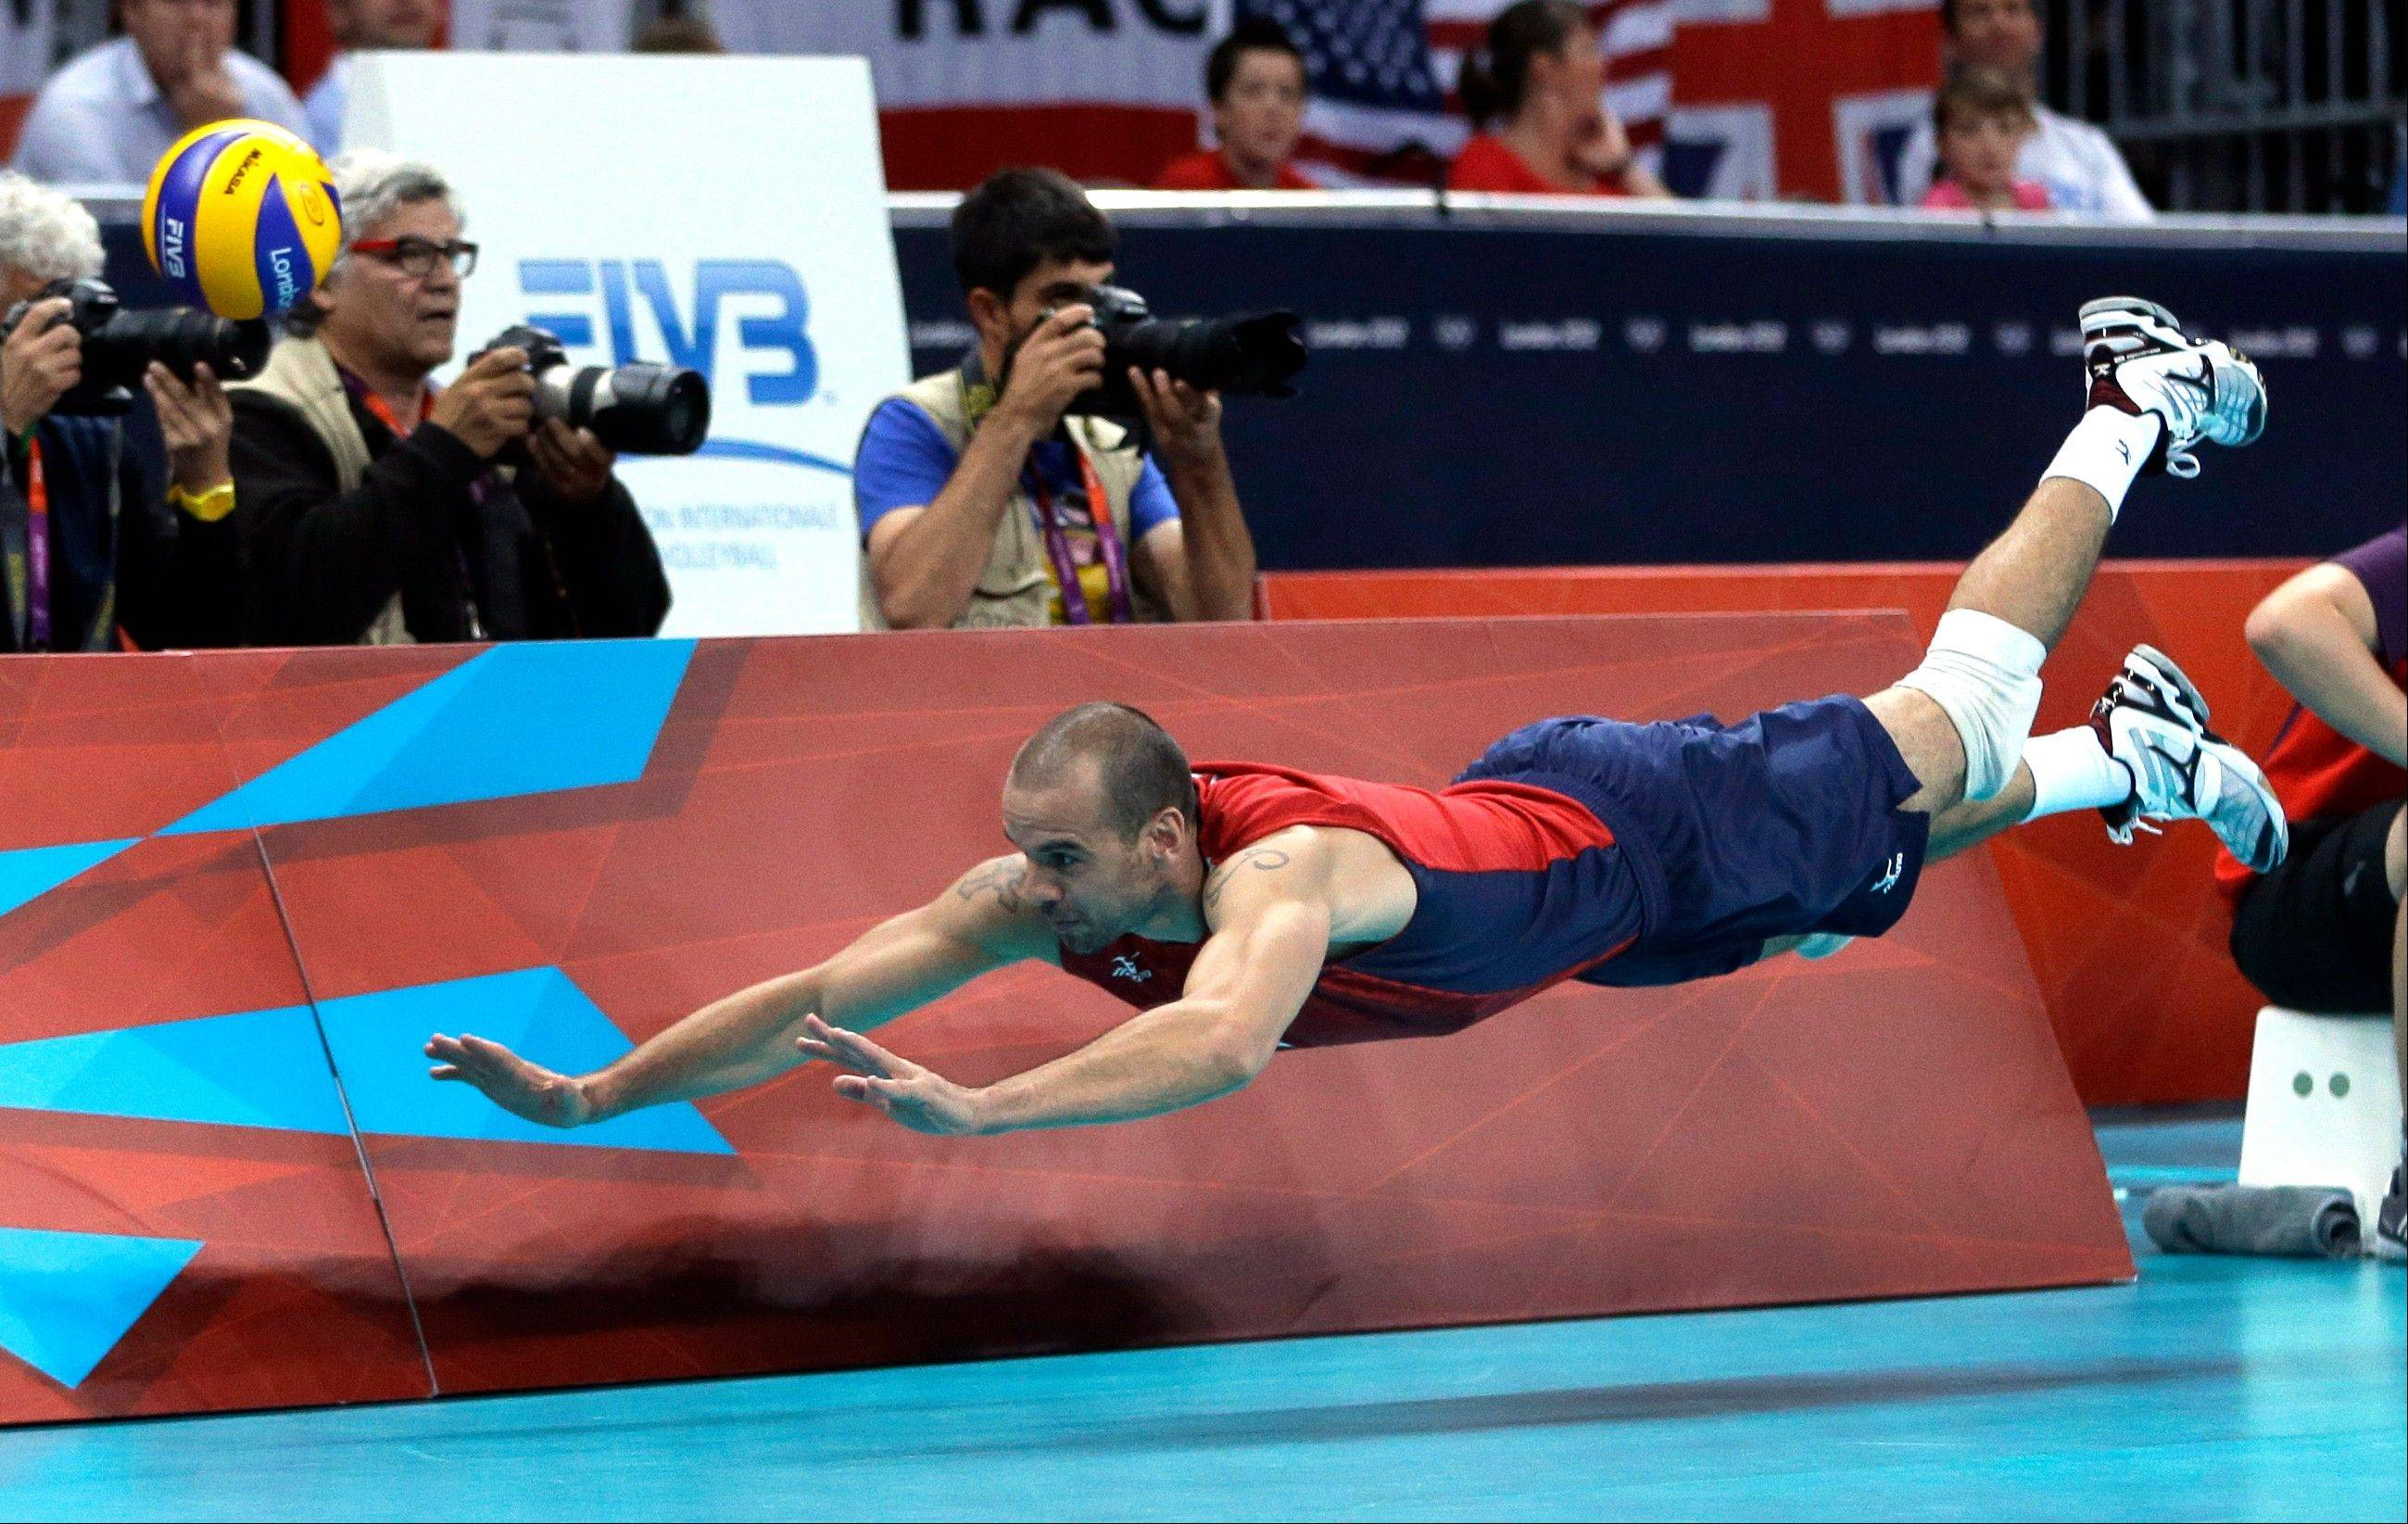 United States' Donald Suxho dives but cannot reach a ball during a men's quarterfinal volleyball match against Italy at the 2012 Summer Olympics, Wednesday, Aug. 8, 2012, in London.